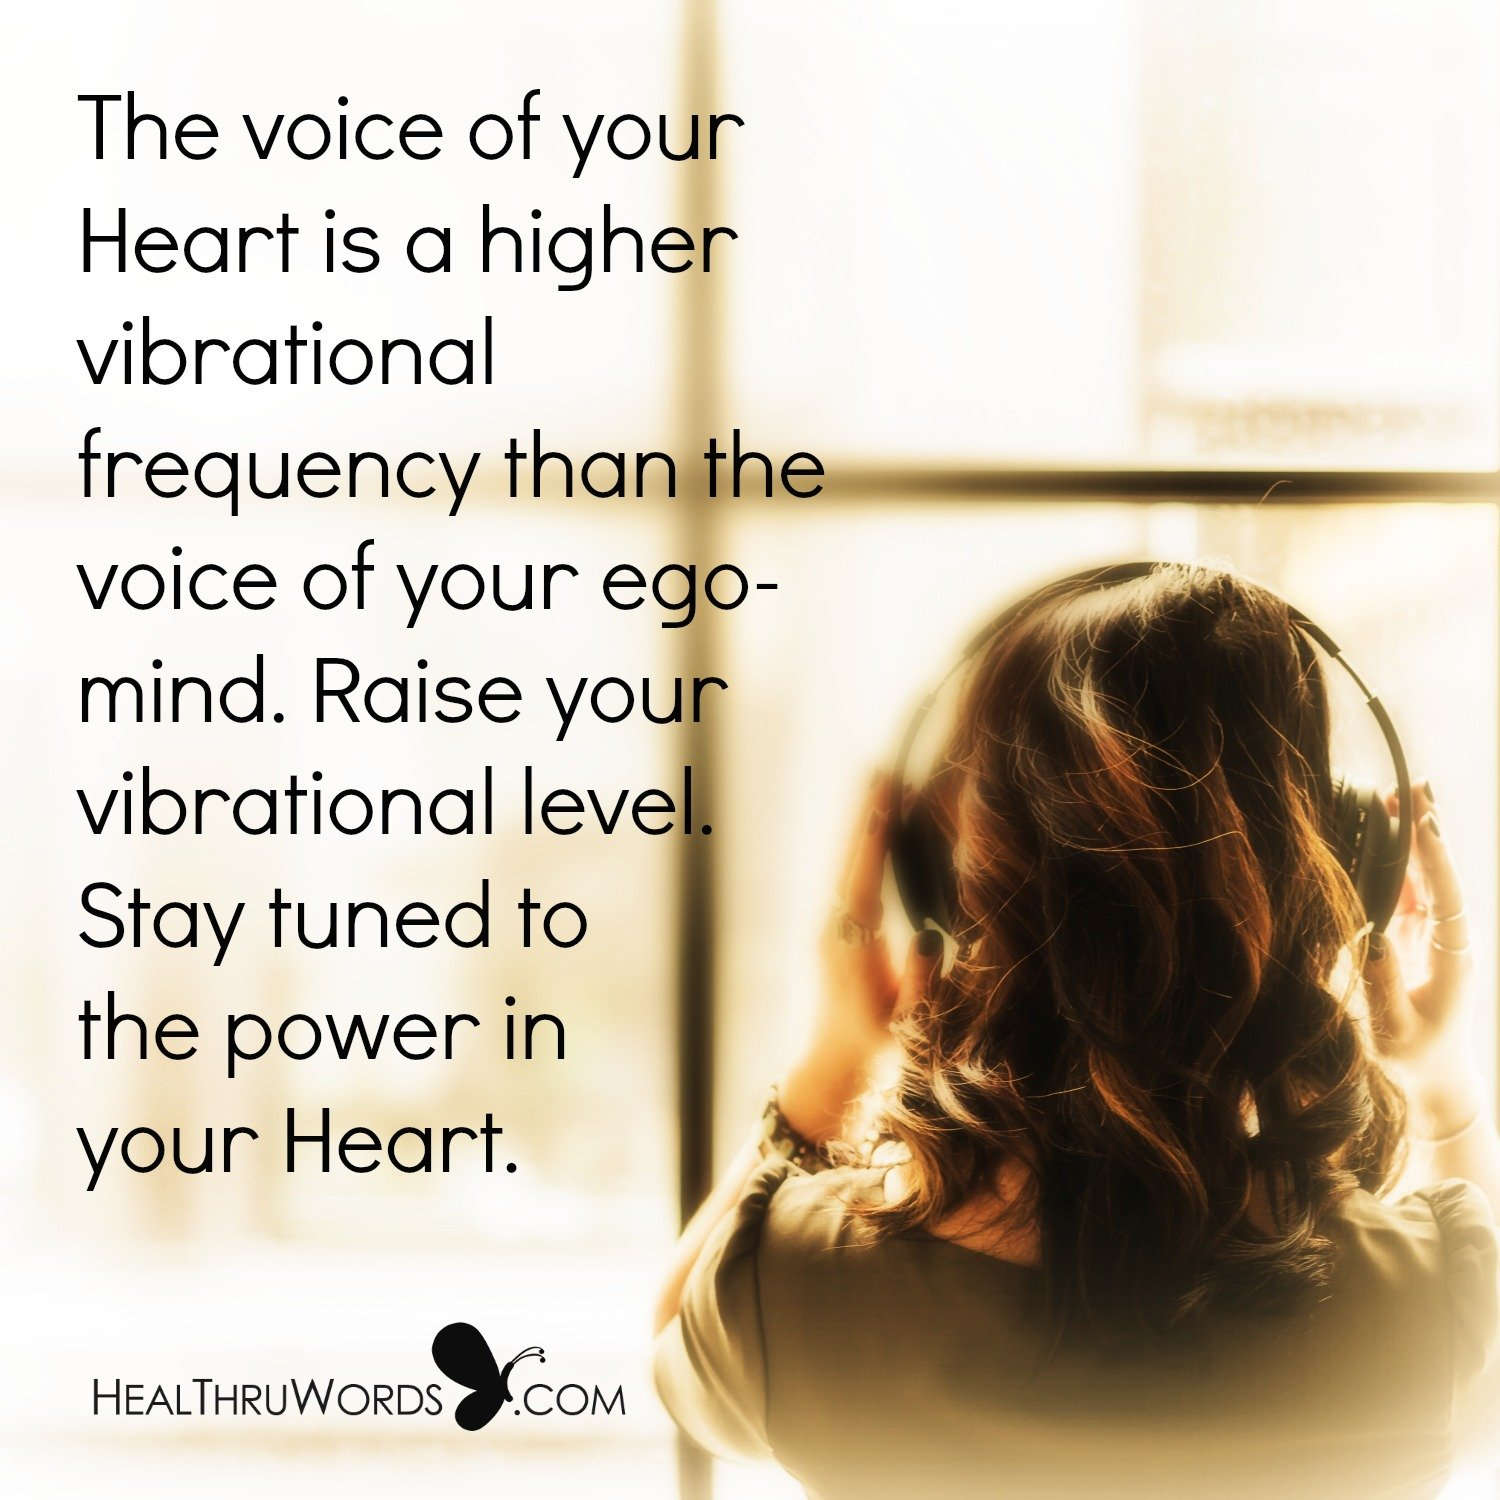 Inspirational Image: Your Vibrational Frequency